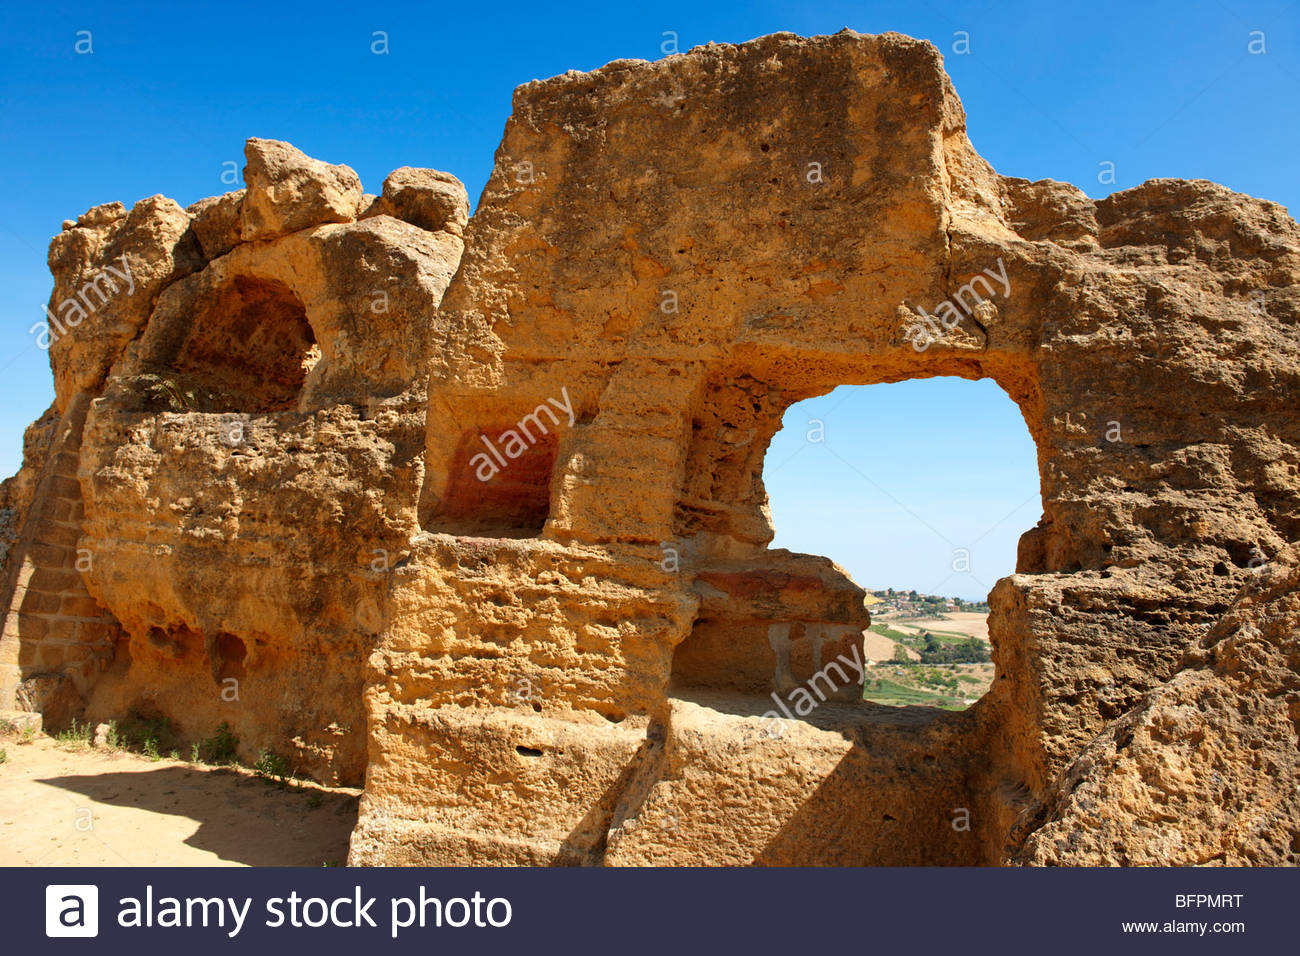 Ancient Greek walls of Agrigento, sicily - Stock Image